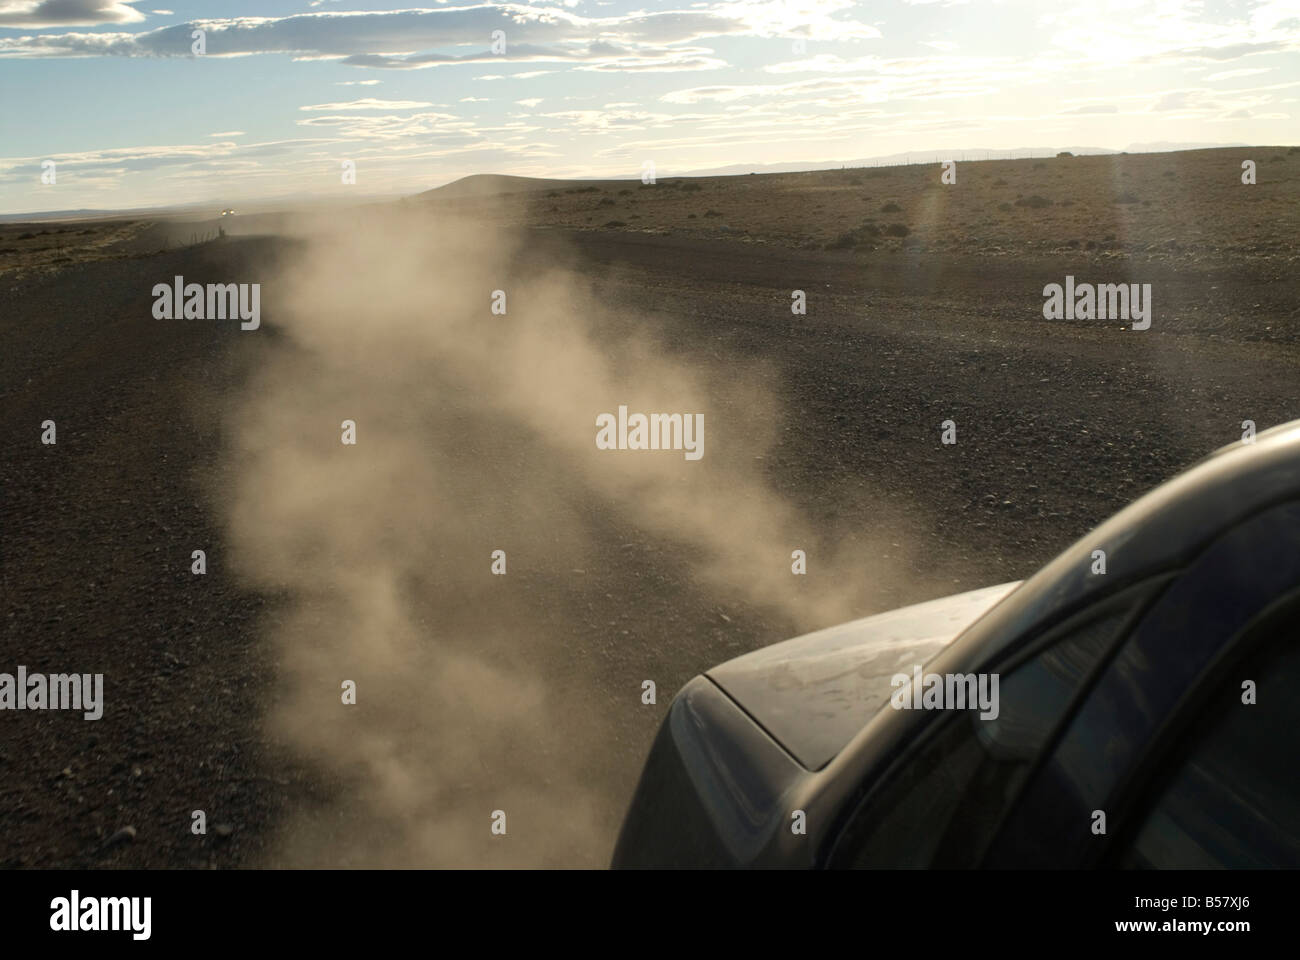 Dust kicks up from behind of car in Patagonia, on the infamous Route 40, Southern Argentina, South America - Stock Image